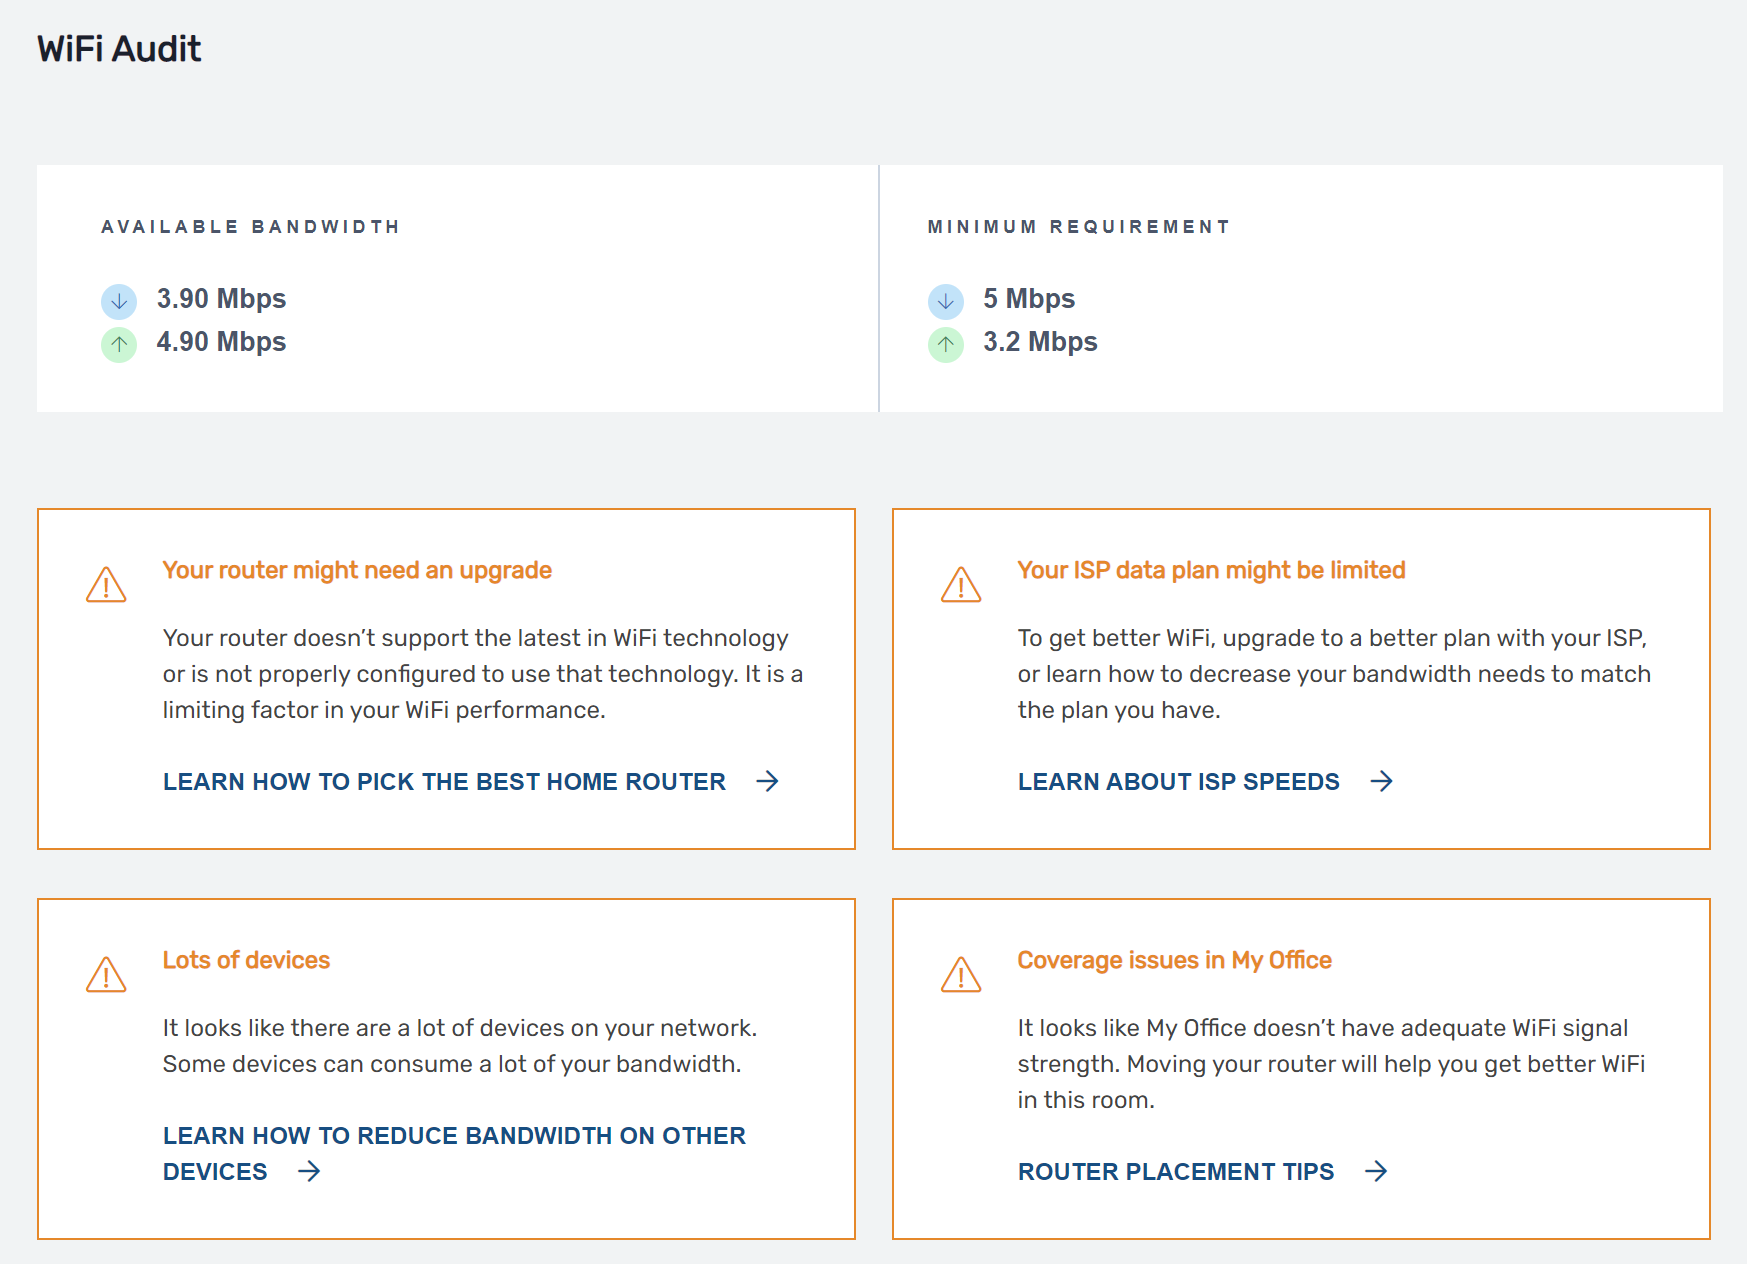 WiFi Audit Report in Rampart Cloud with insights to improve your home WiFi.